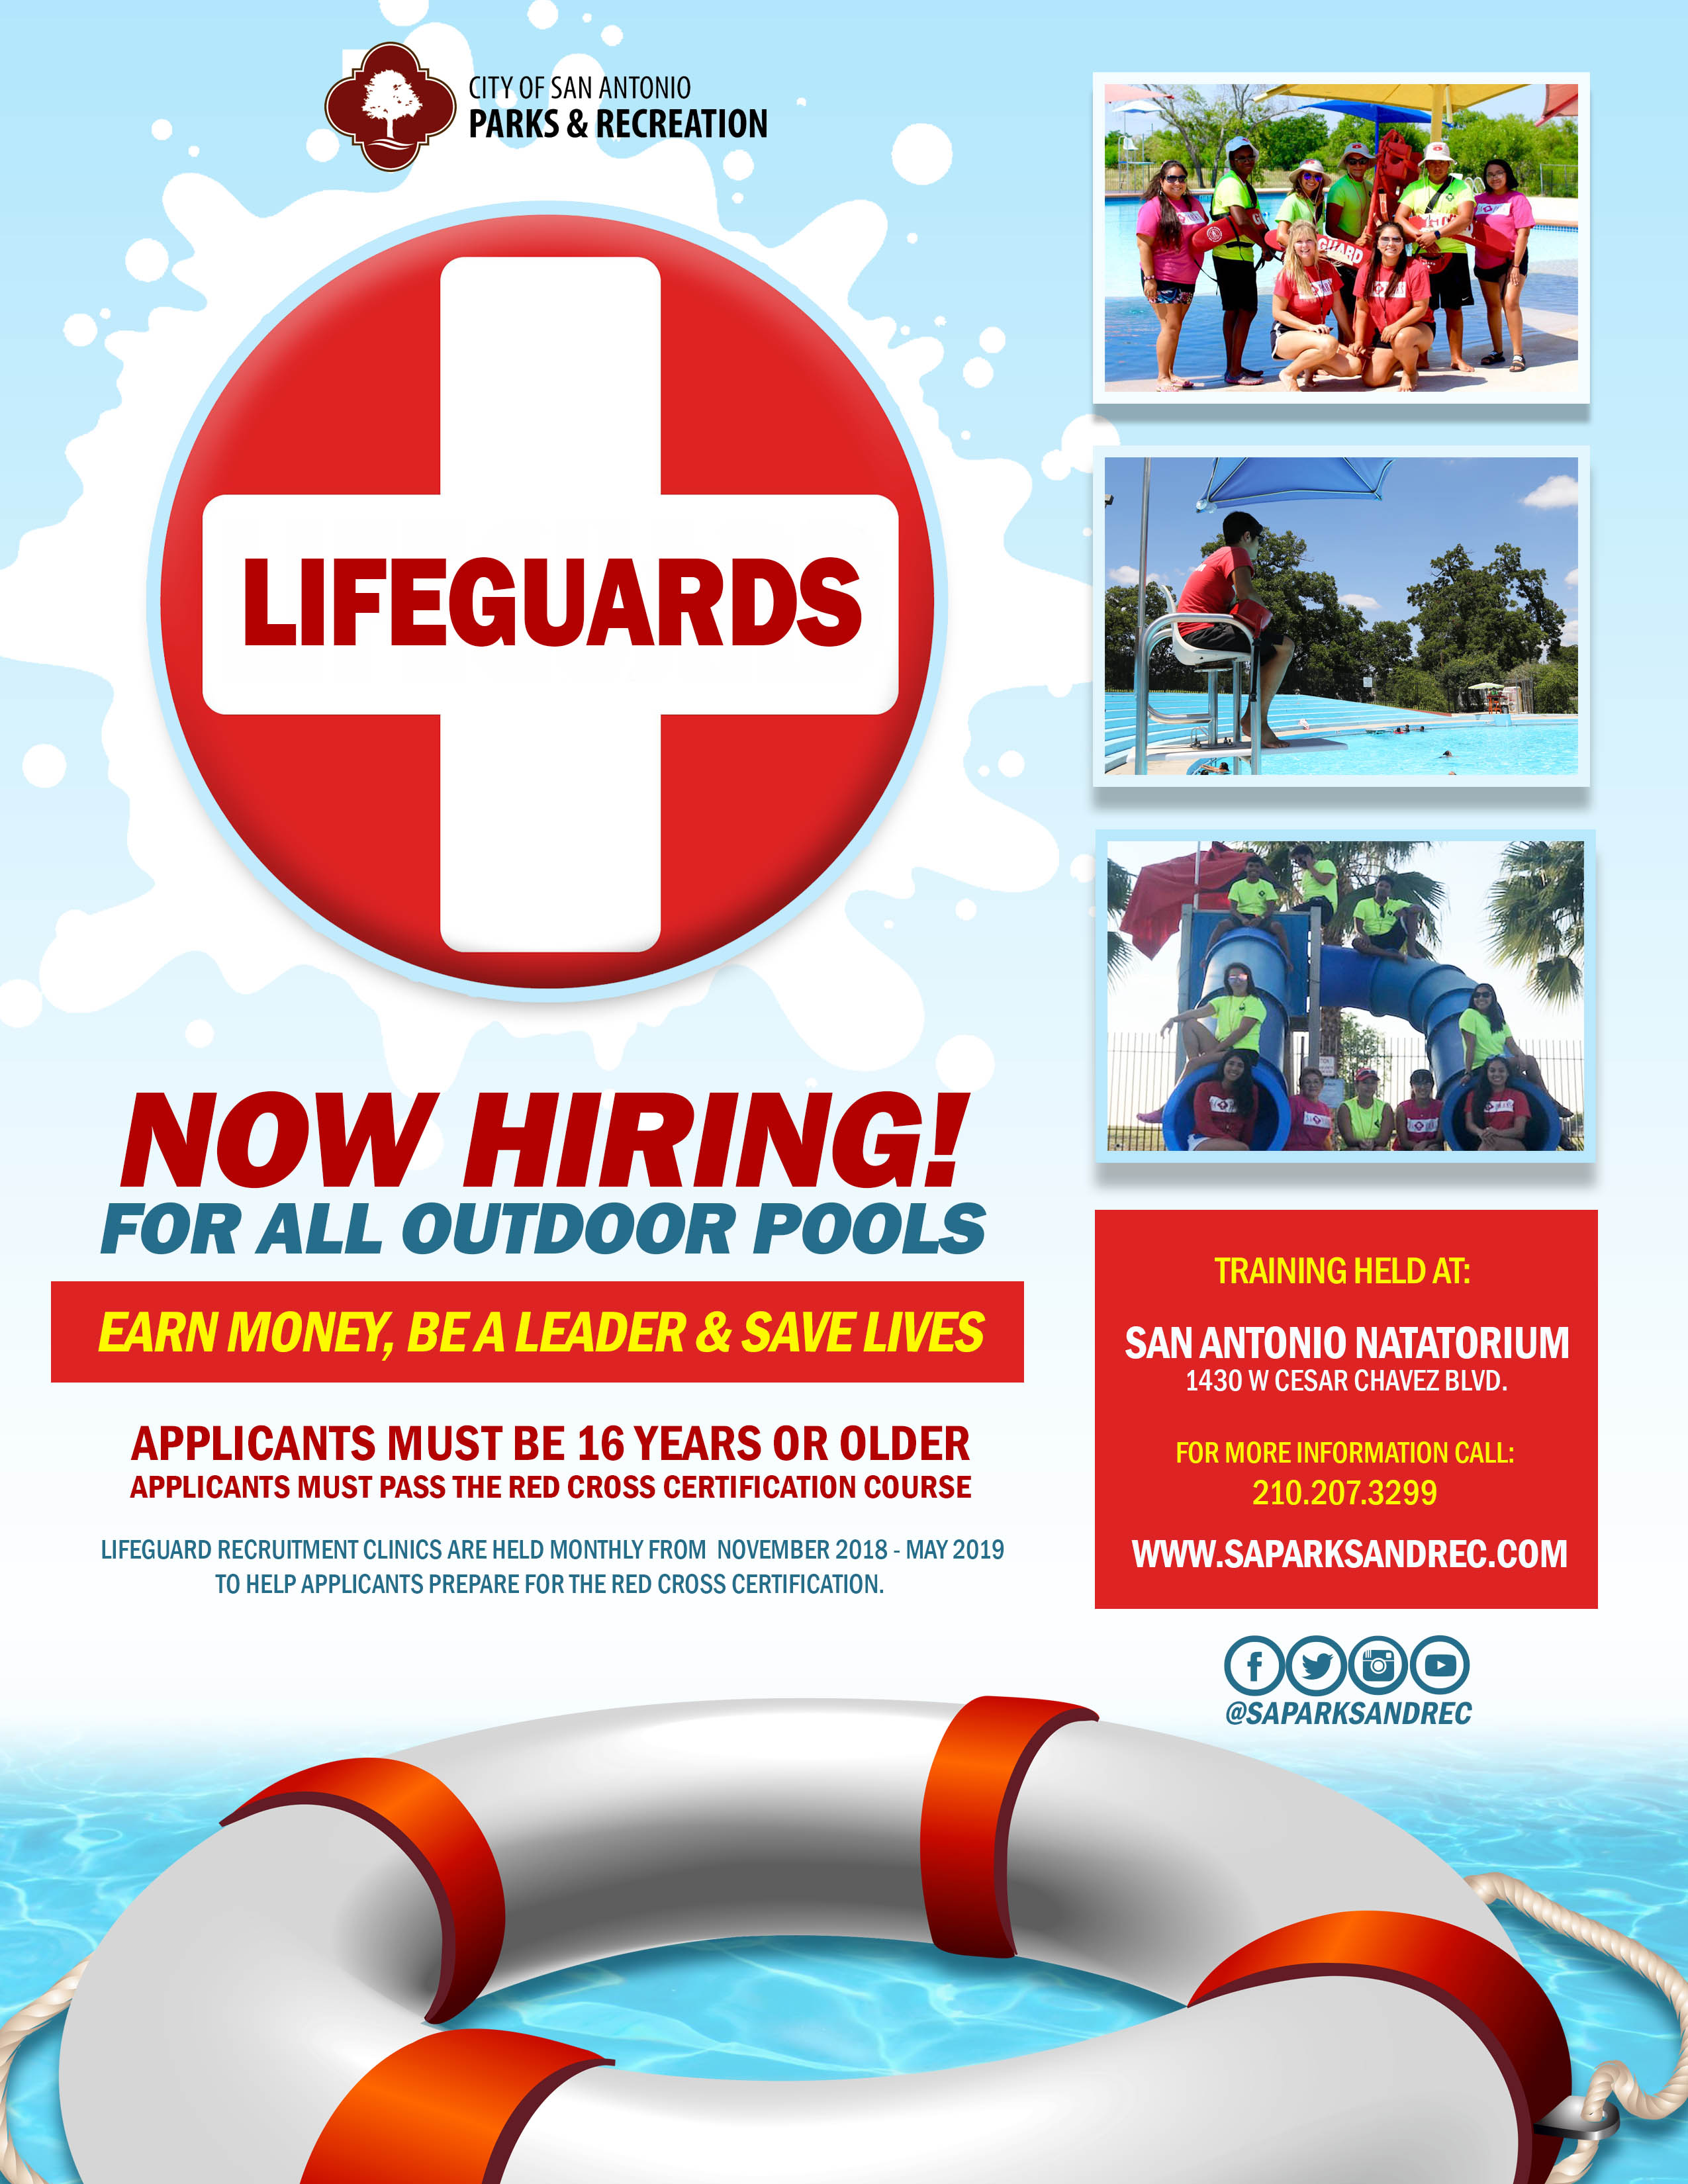 Now Hiring Lifeguards! - The City of San Antonio - Official